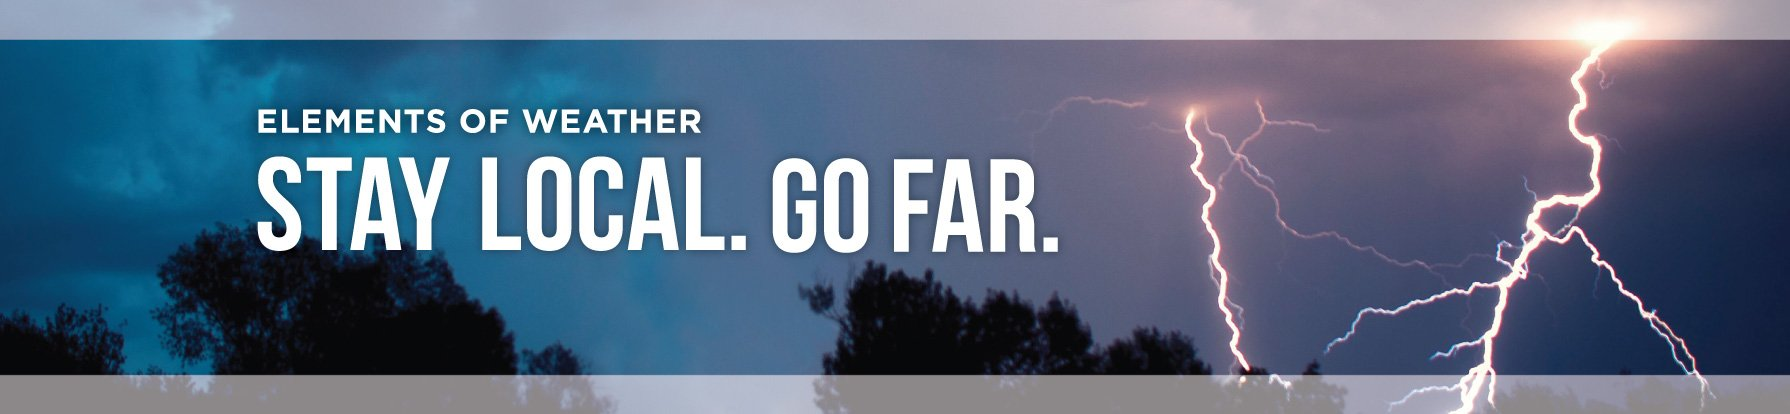 Elements of Weather / Stay Local. Go Far.